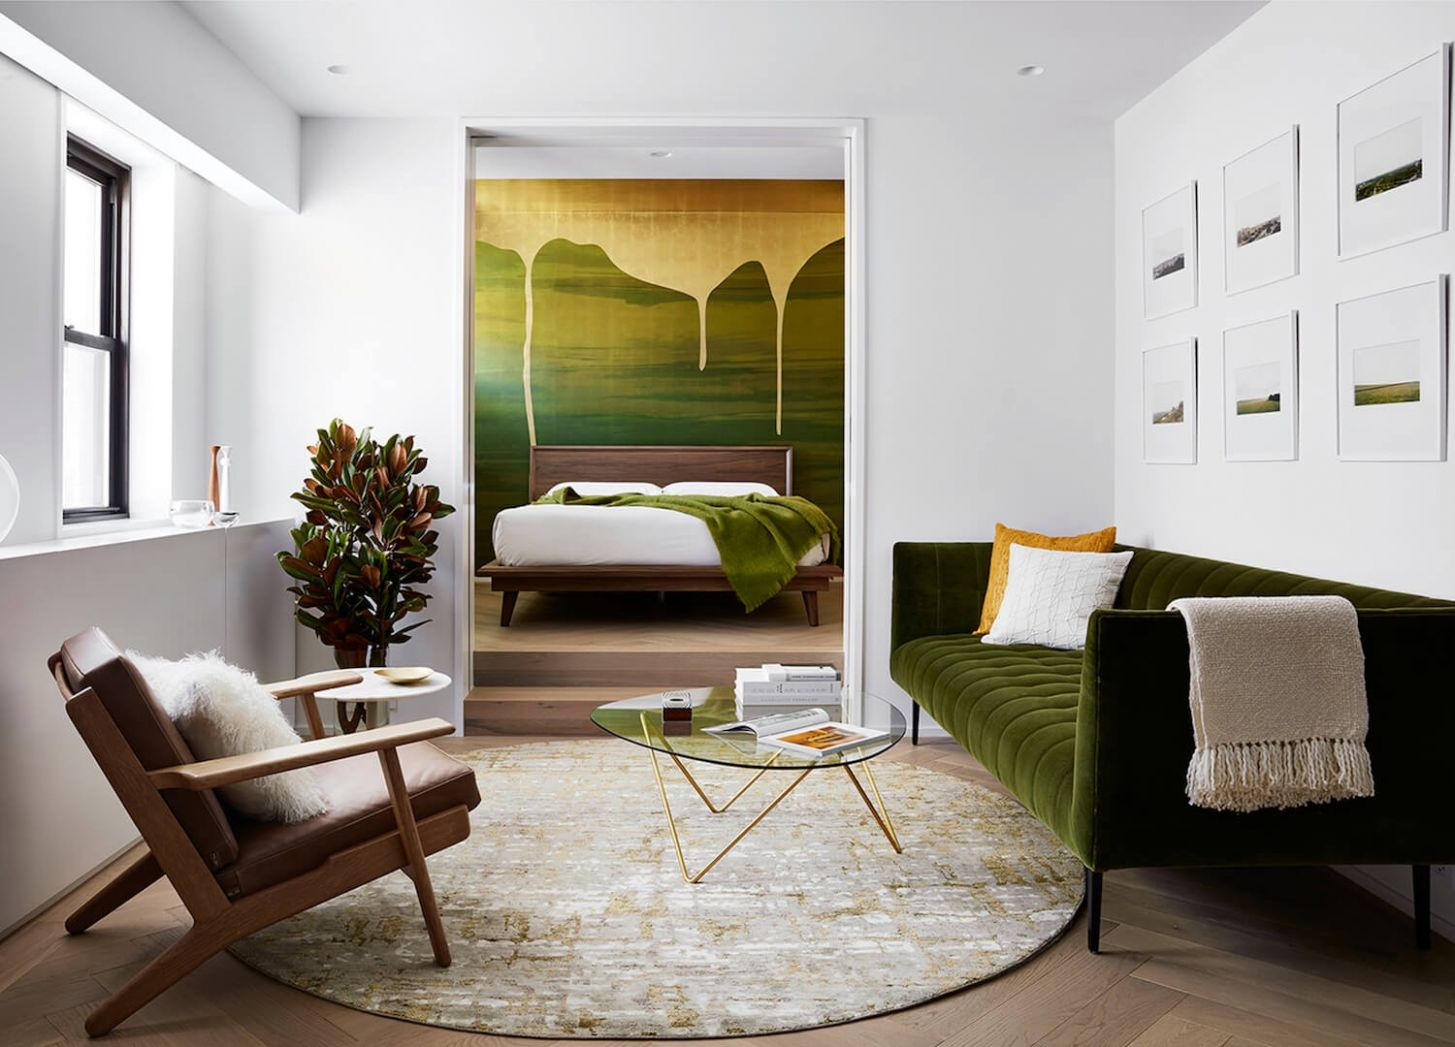 Interior Design Project Brings Nature Inside This New York Apartment